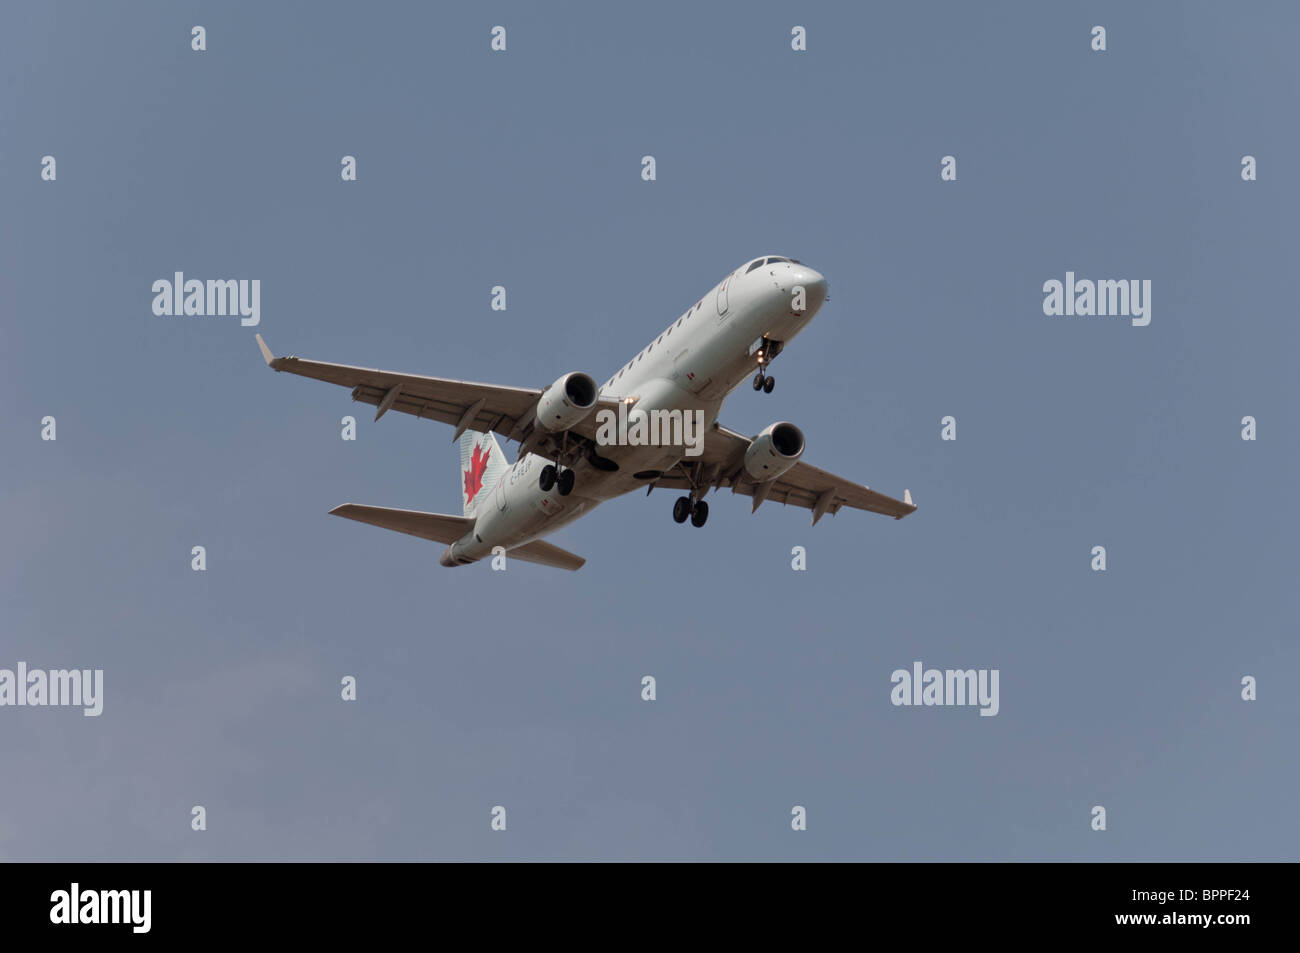 Air Canada Embraer 170-200LR on final approach to landing. - Stock Image